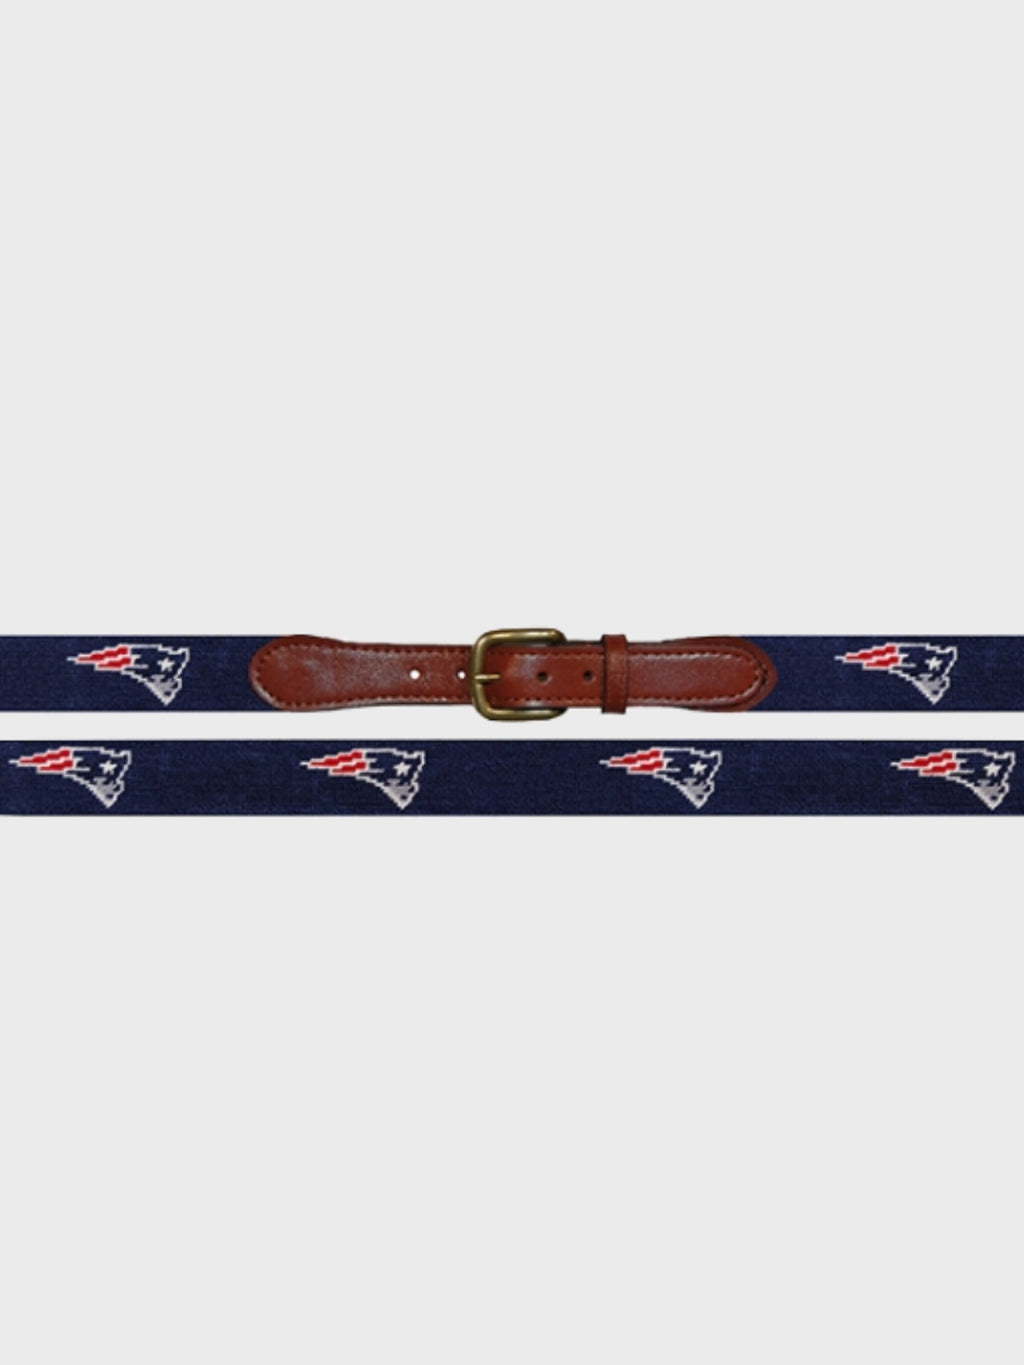 New England Patriots Needlepoint Belt - Island Outfitters